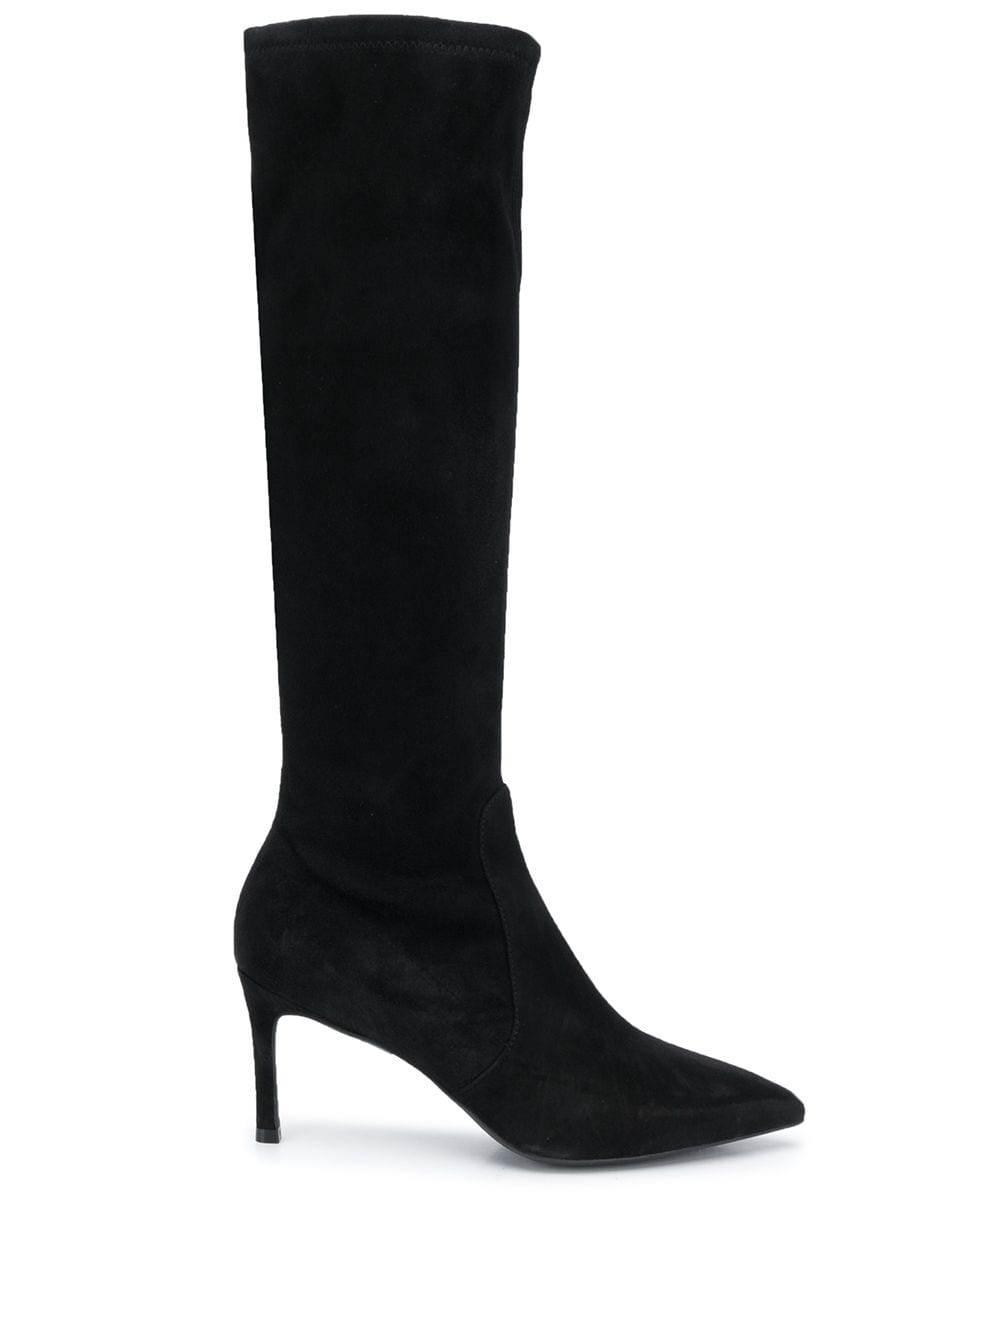 Wanessa Leather Boots